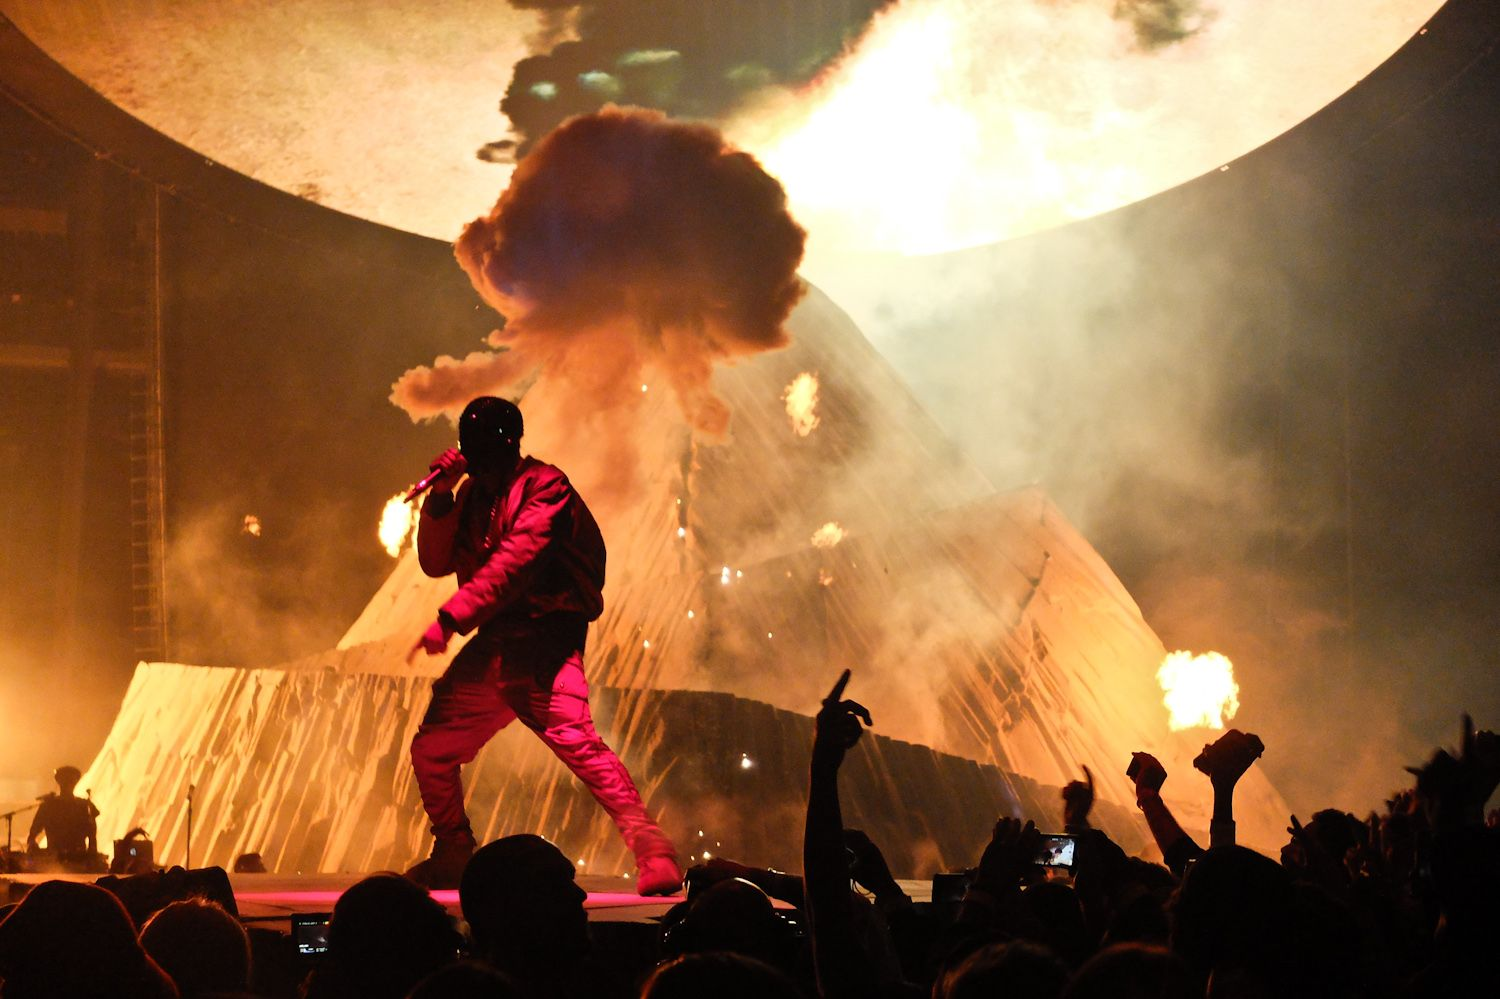 Kanye West Yeezus Show At Madison Square Garden, New York | Livin Cool